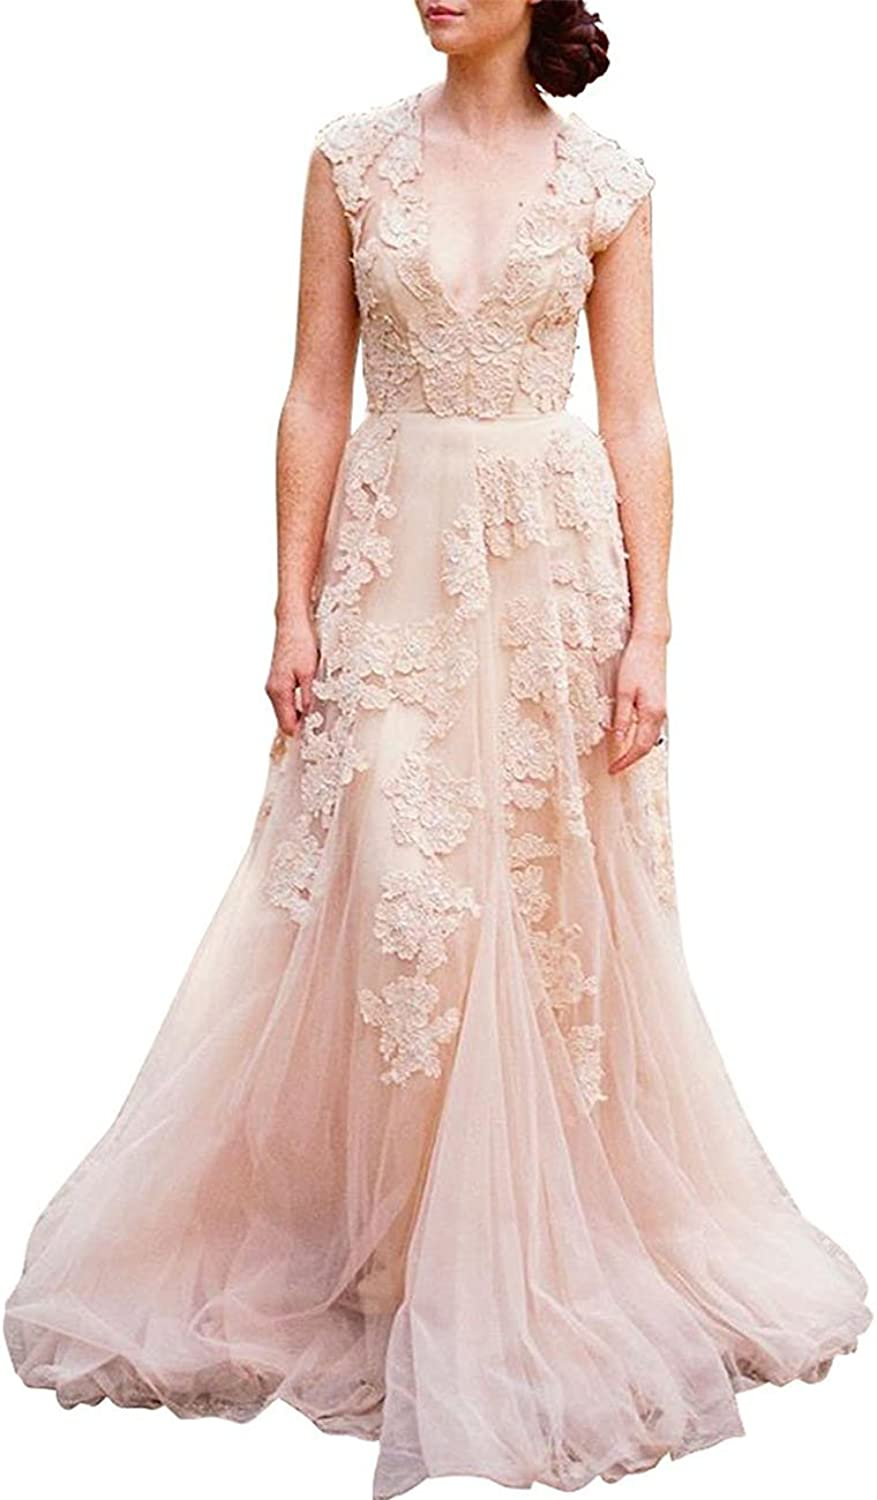 Cdress Women's Vintage Lace Wedding Dress Cap Sleeve Tulle A Line Bridal Evening Gown